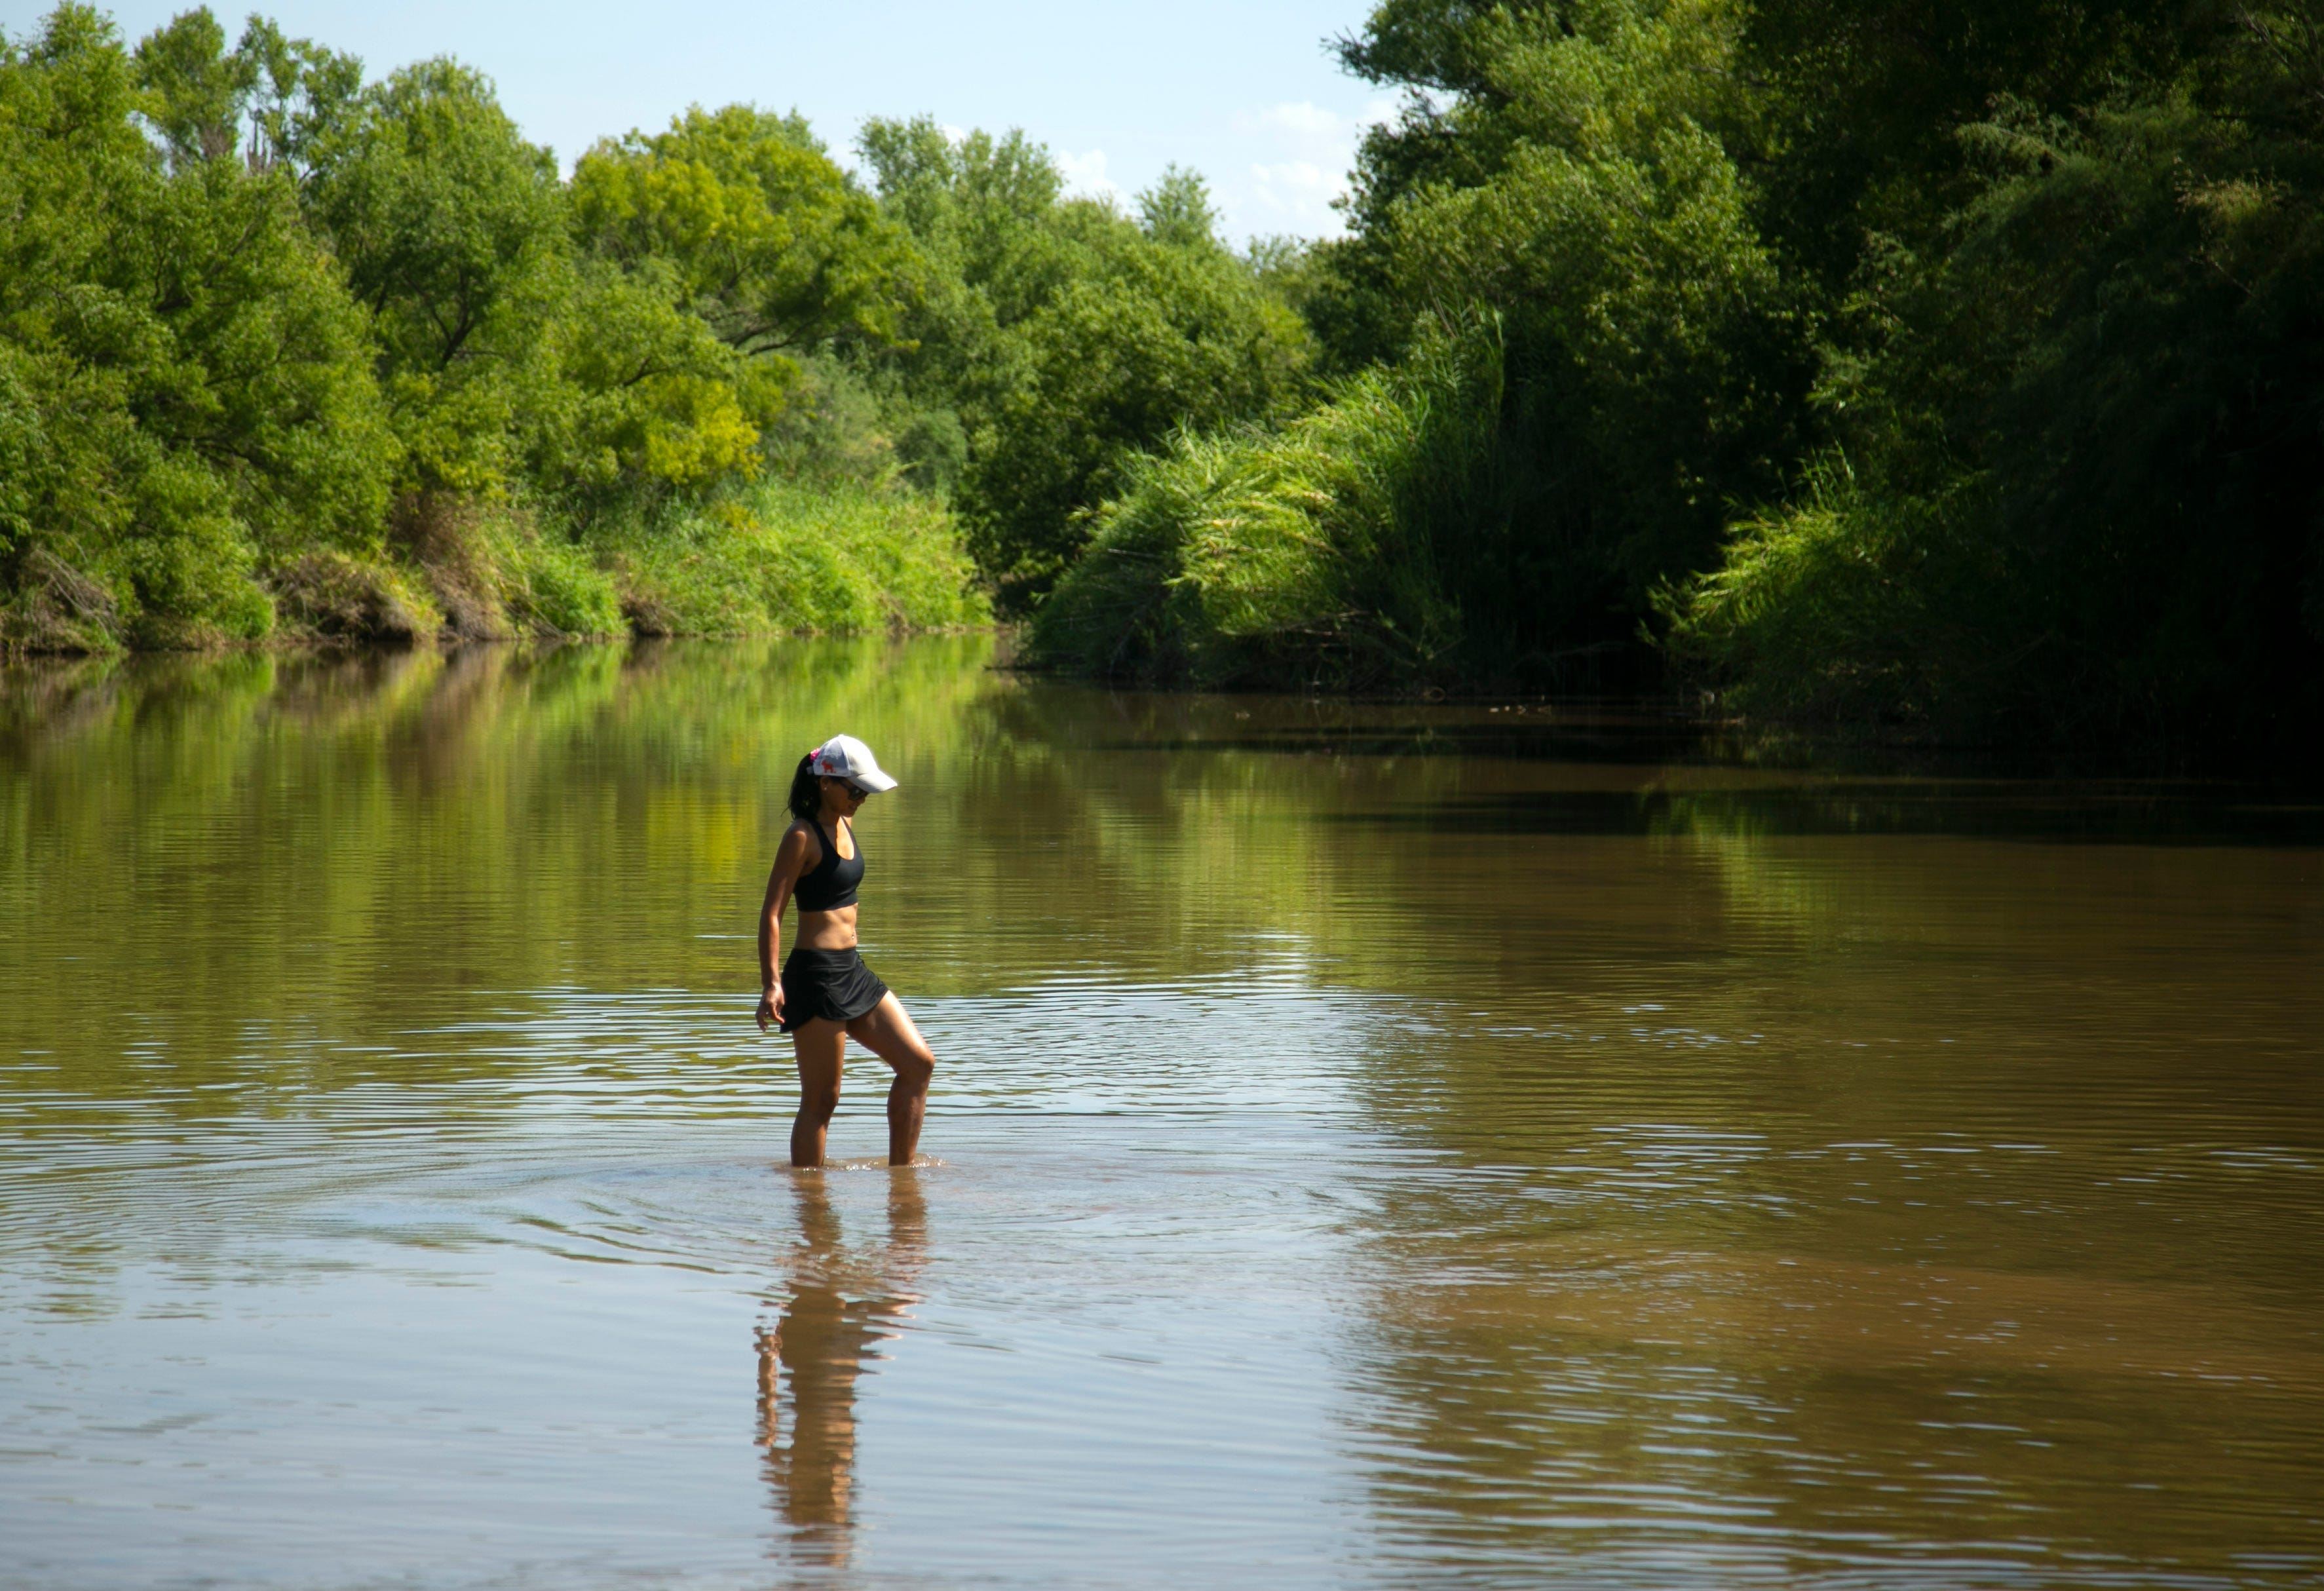 Sray Campanile of Buckeye goes clamming for Asiatic clams in the Verde River at the Needle Rock Recreation Site outside of Rio Verde on July 28, 2021.